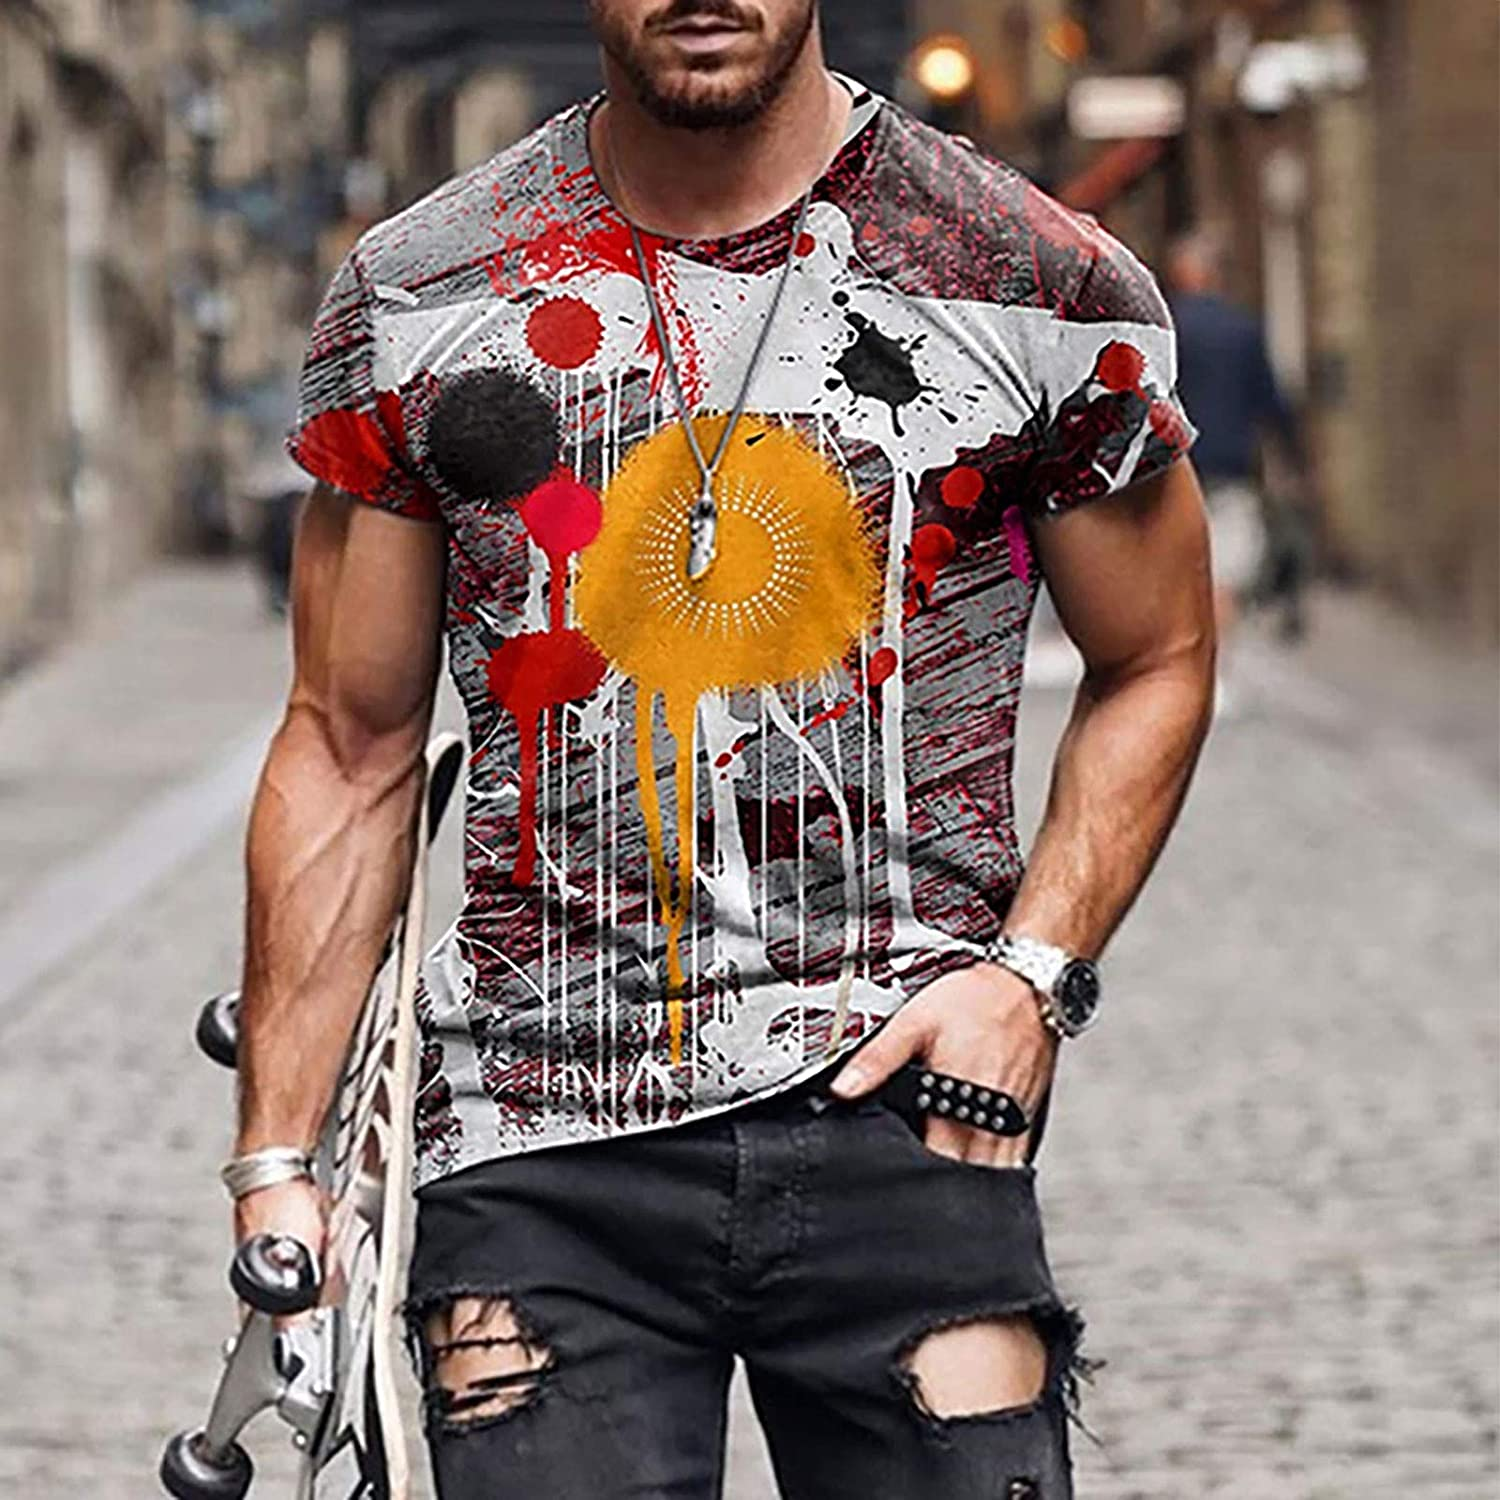 DZQUY Mens Casual Workout Short Sleeve T-Shirts Summer Hipster Hip Hop Vintage Printed Gym Muscle Tops Blouses